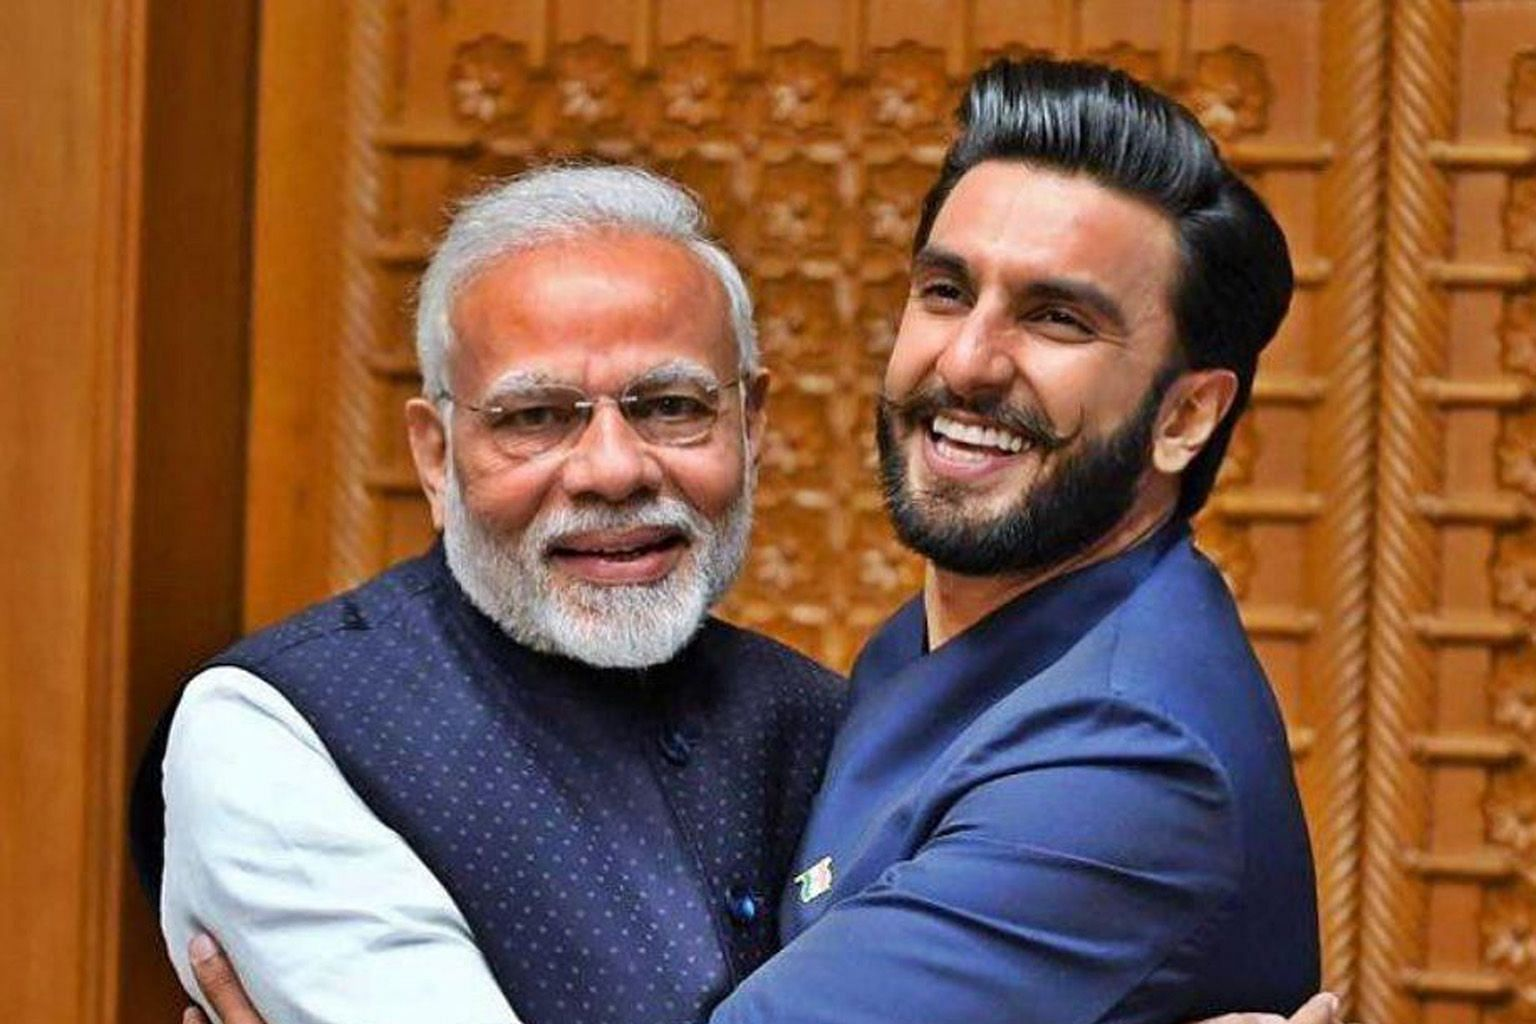 Actor Ranveer Singh's photo post of himself hugging Indian Prime Minister Narendra Modi gained more than three million likes.